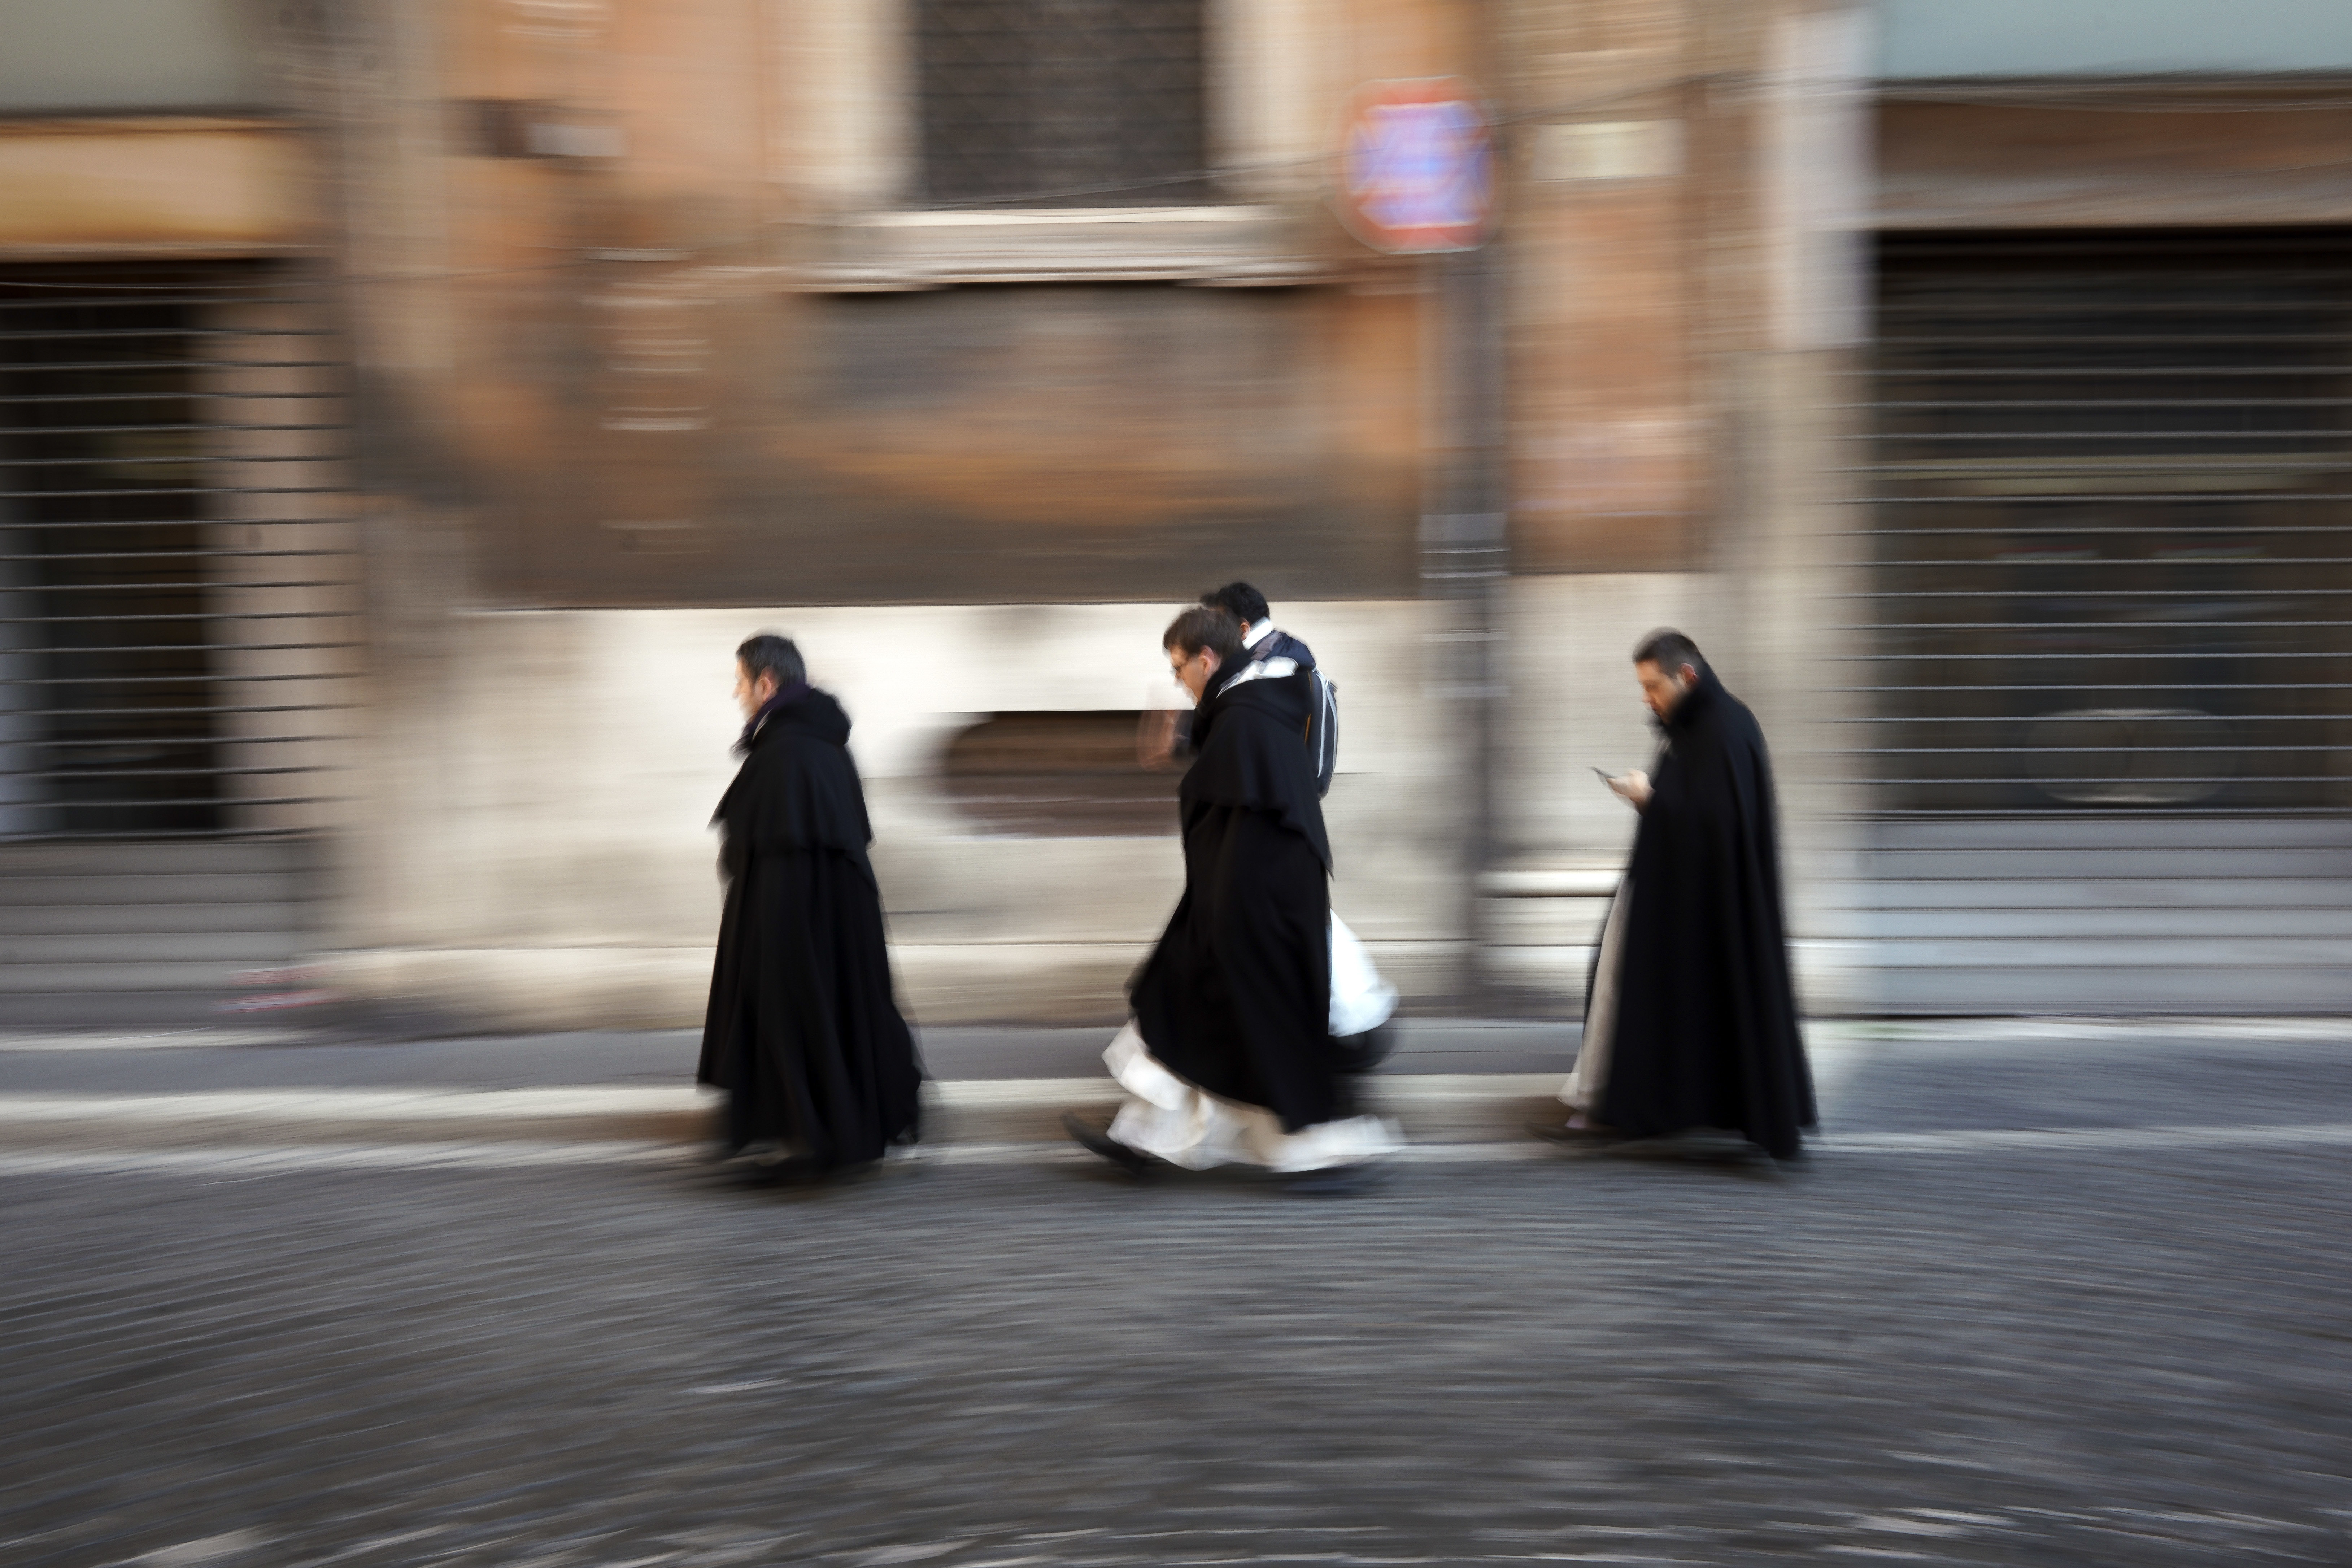 Priests walk in a street in downtown Rome, Monday, Jan. 7, 2019. (AP Photo/Andrew Medichini)